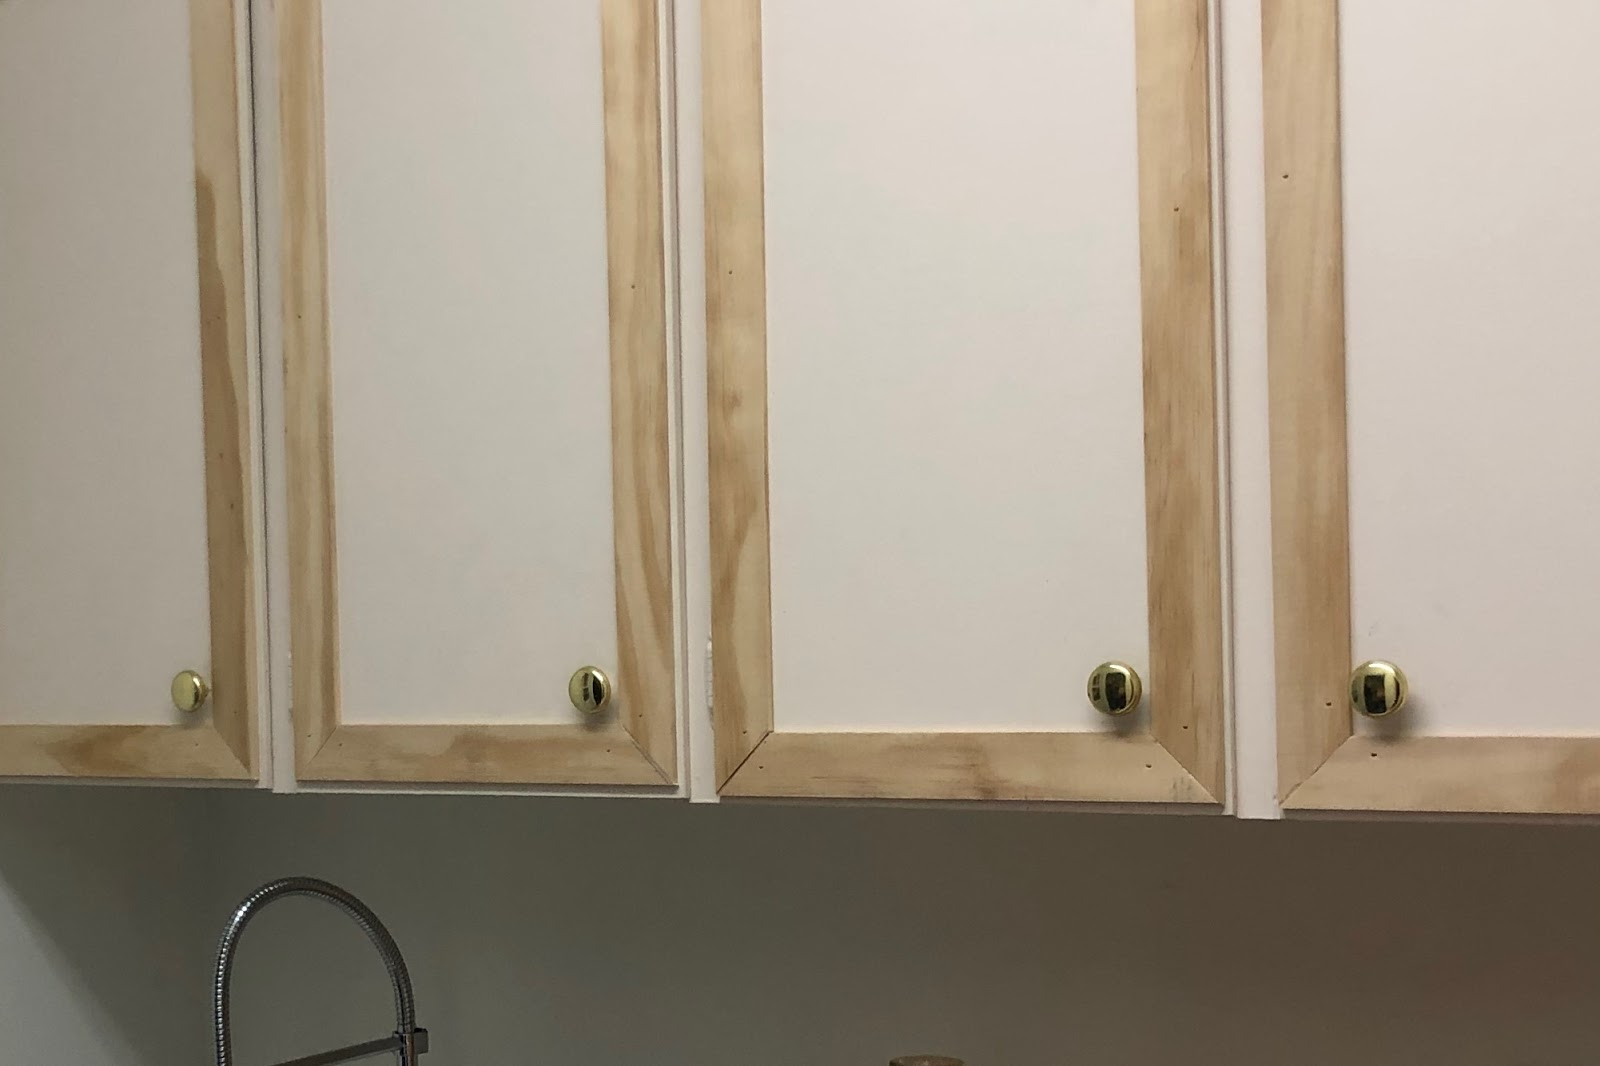 one room challenge: week 5 - updating old cabinets